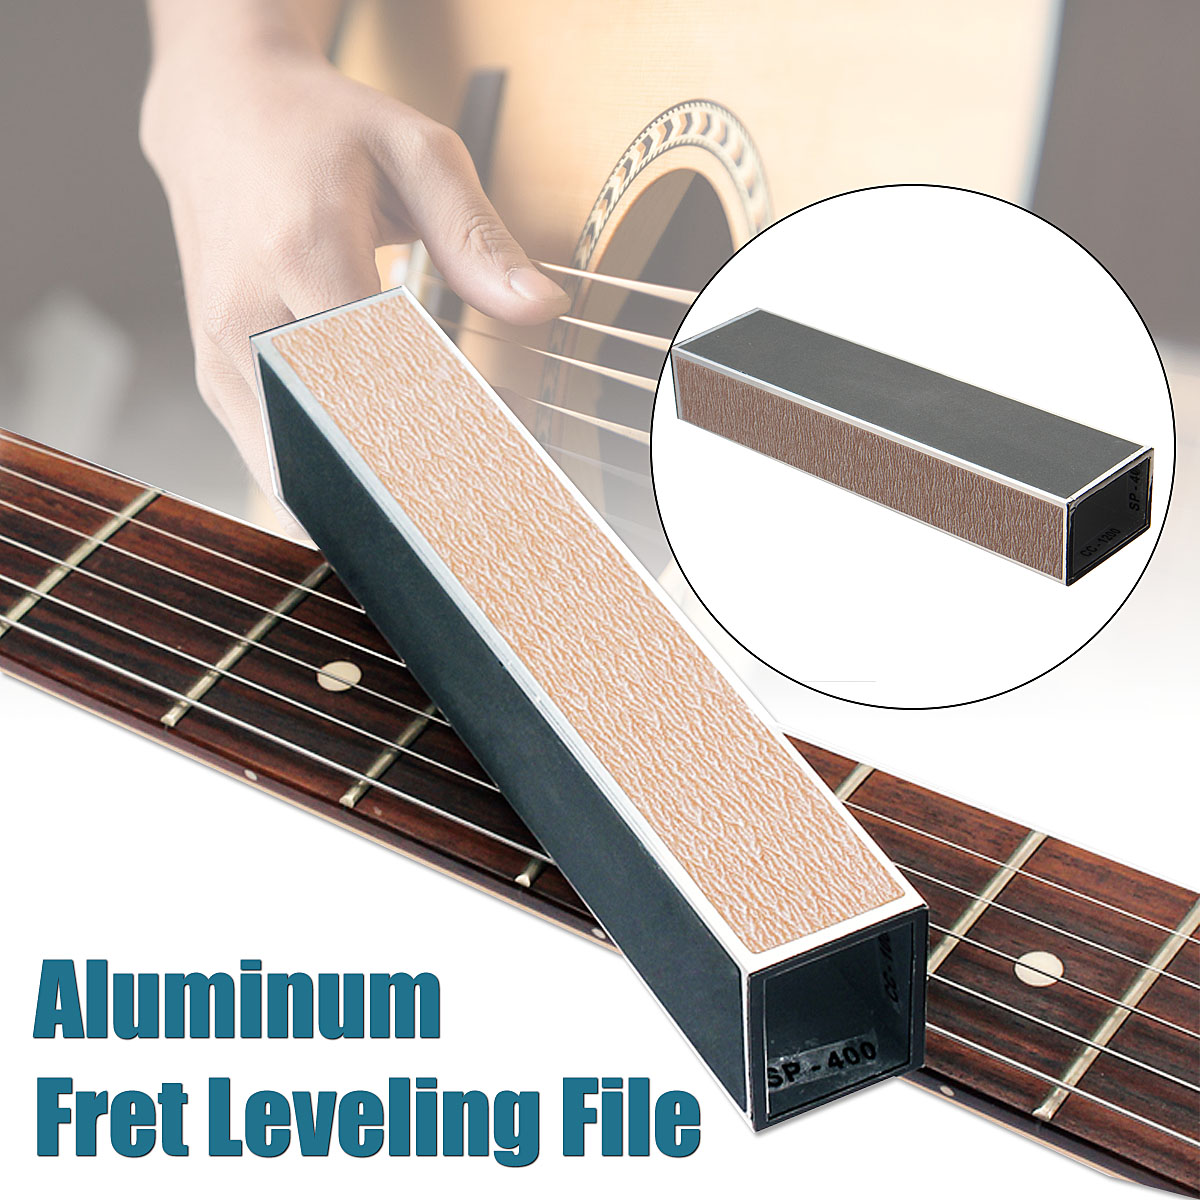 SaicleHome Guitar Musical Instruments Bass Beam Luthier Tool Fret Leveling File Aluminum